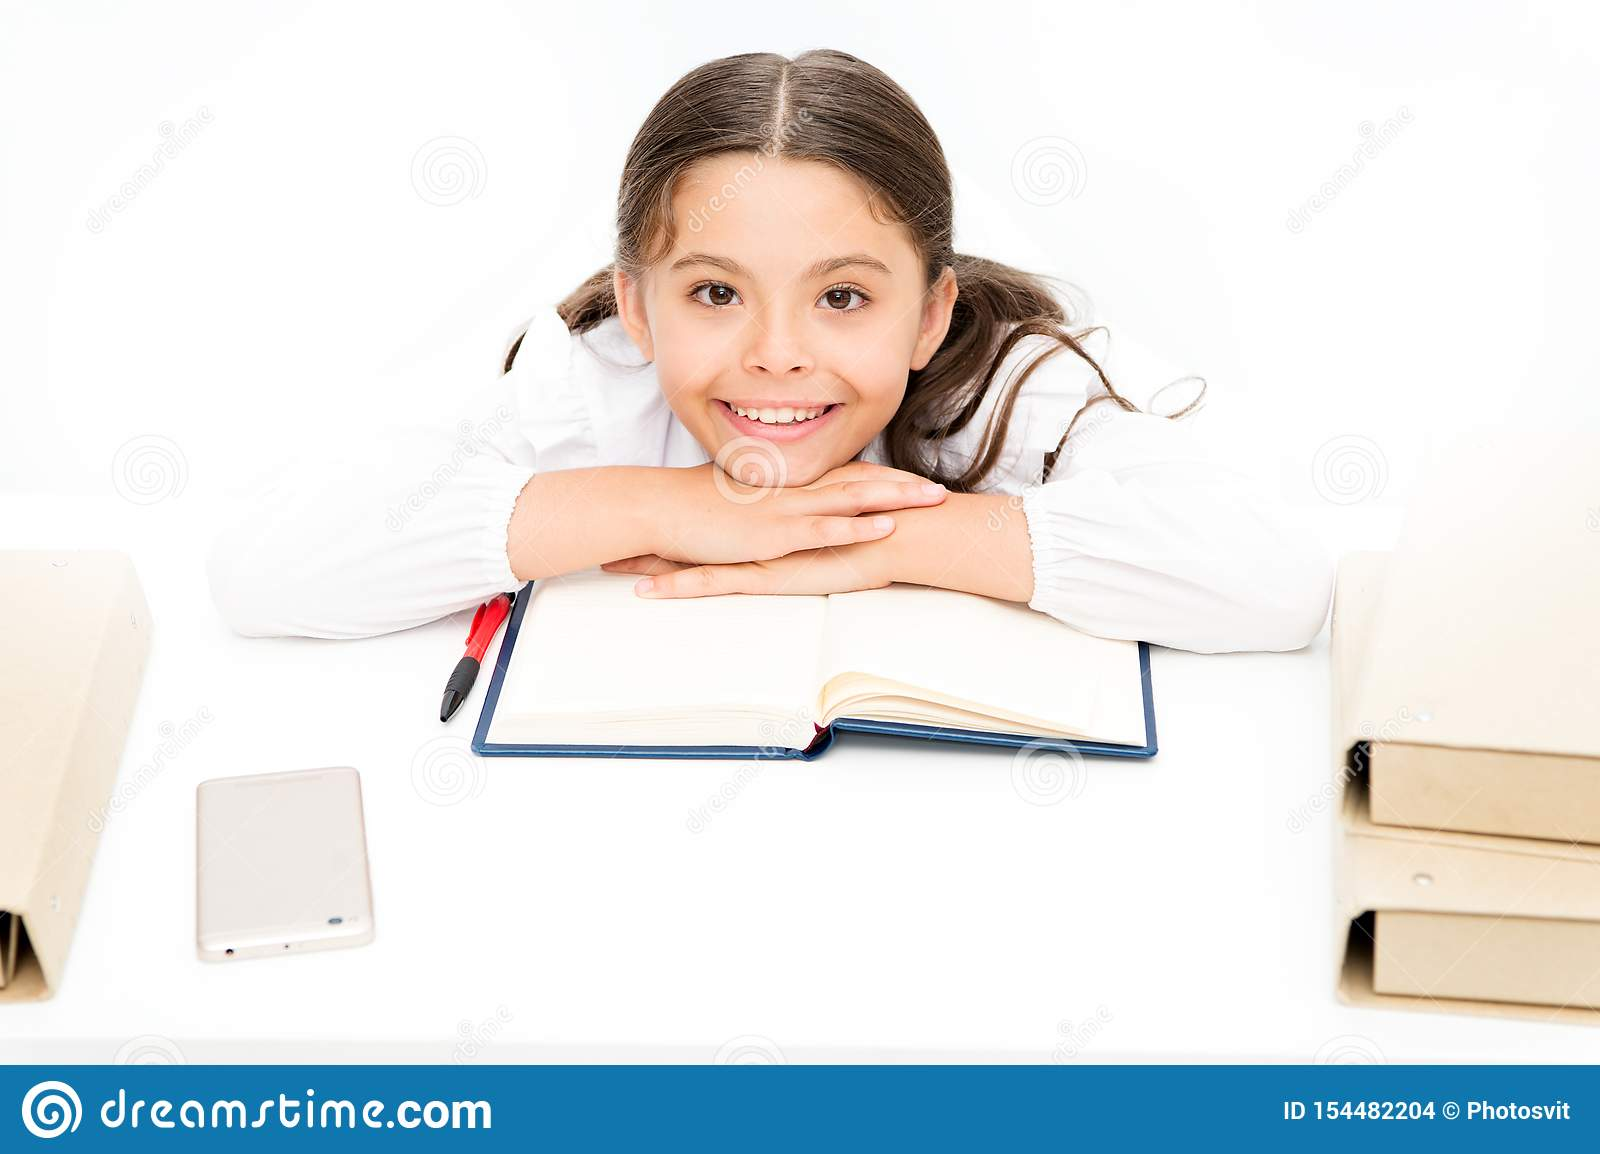 Homeschooling. dictionary notebook. Get information. cheerful girl with workbook. Education. reading story. childrens